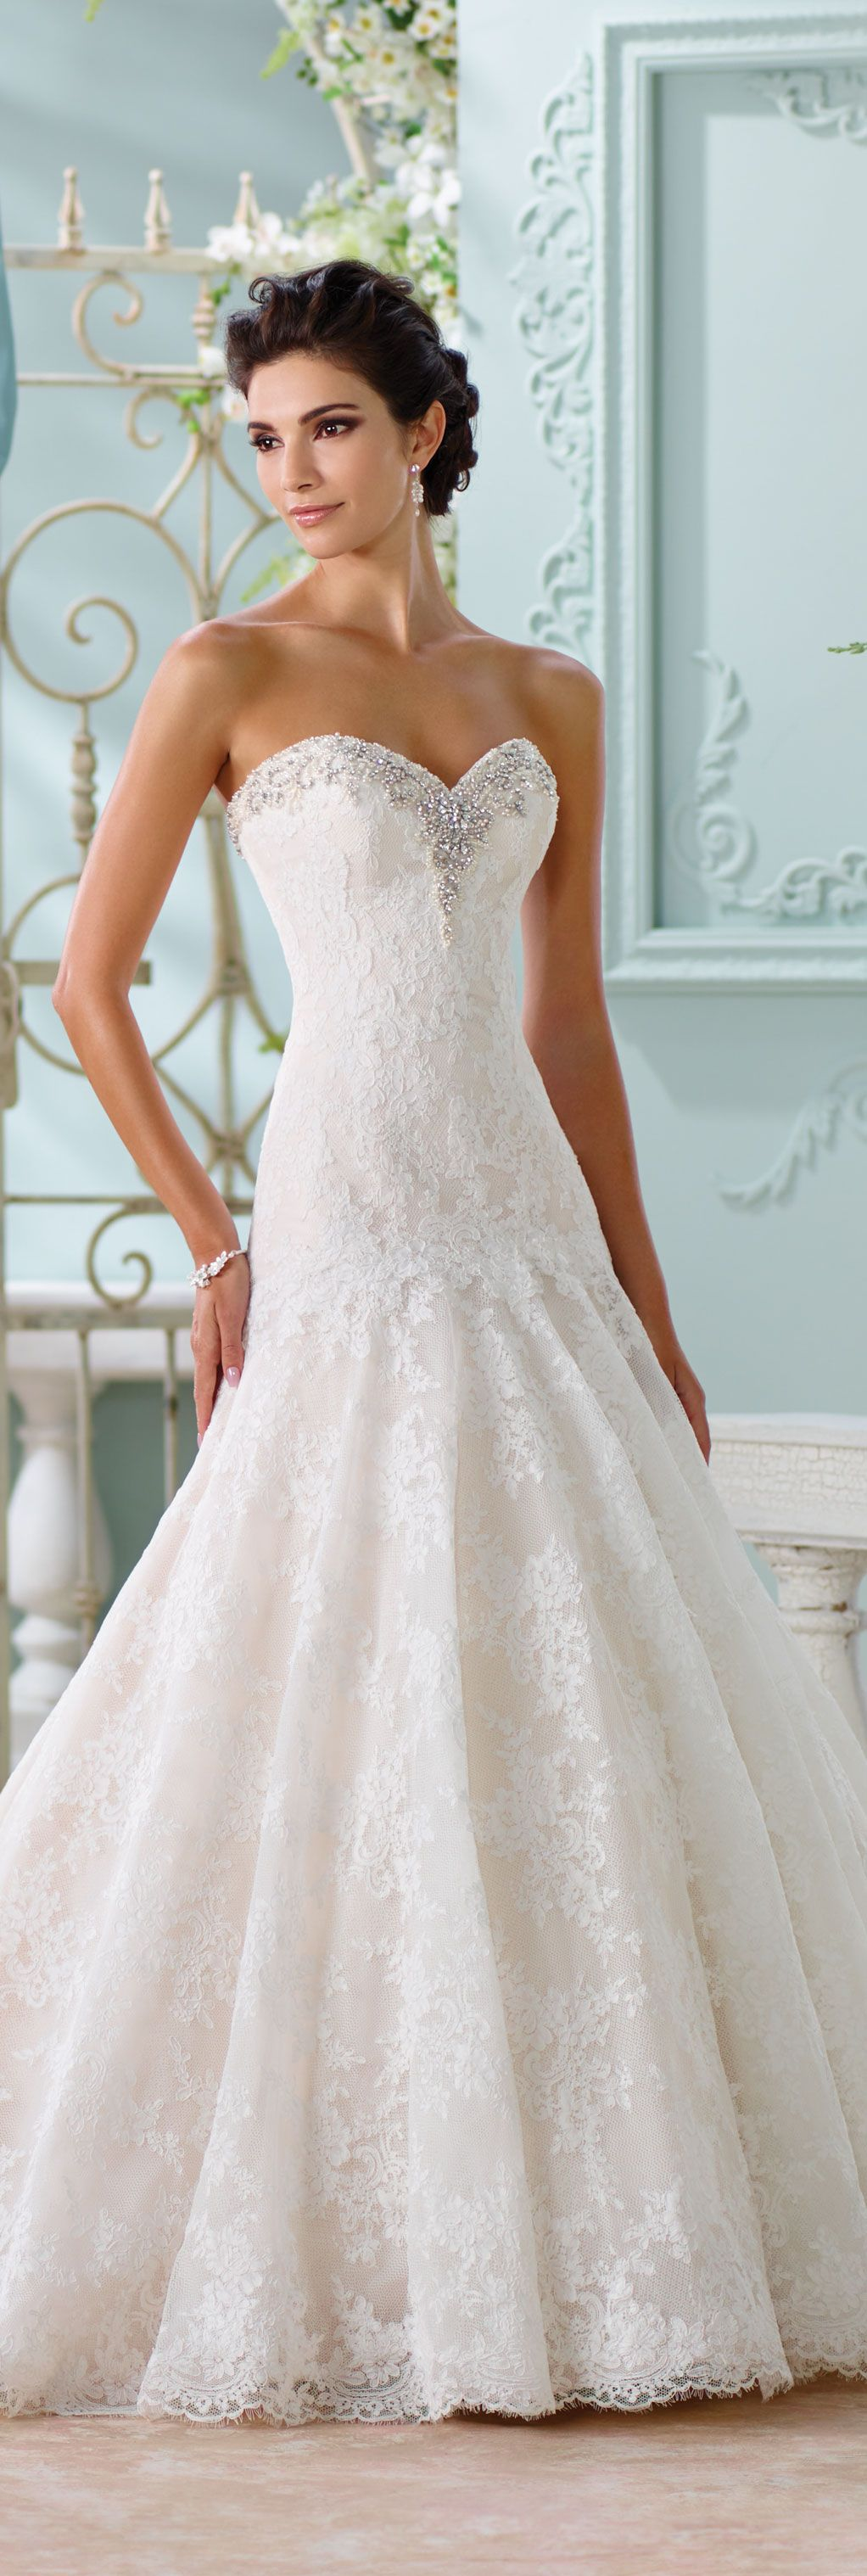 b6323f39bbf The David Tutera for Mon Cheri Spring 2016 Wedding Gown Collection - Style  No. 116205 Chasca  laceweddingdresses